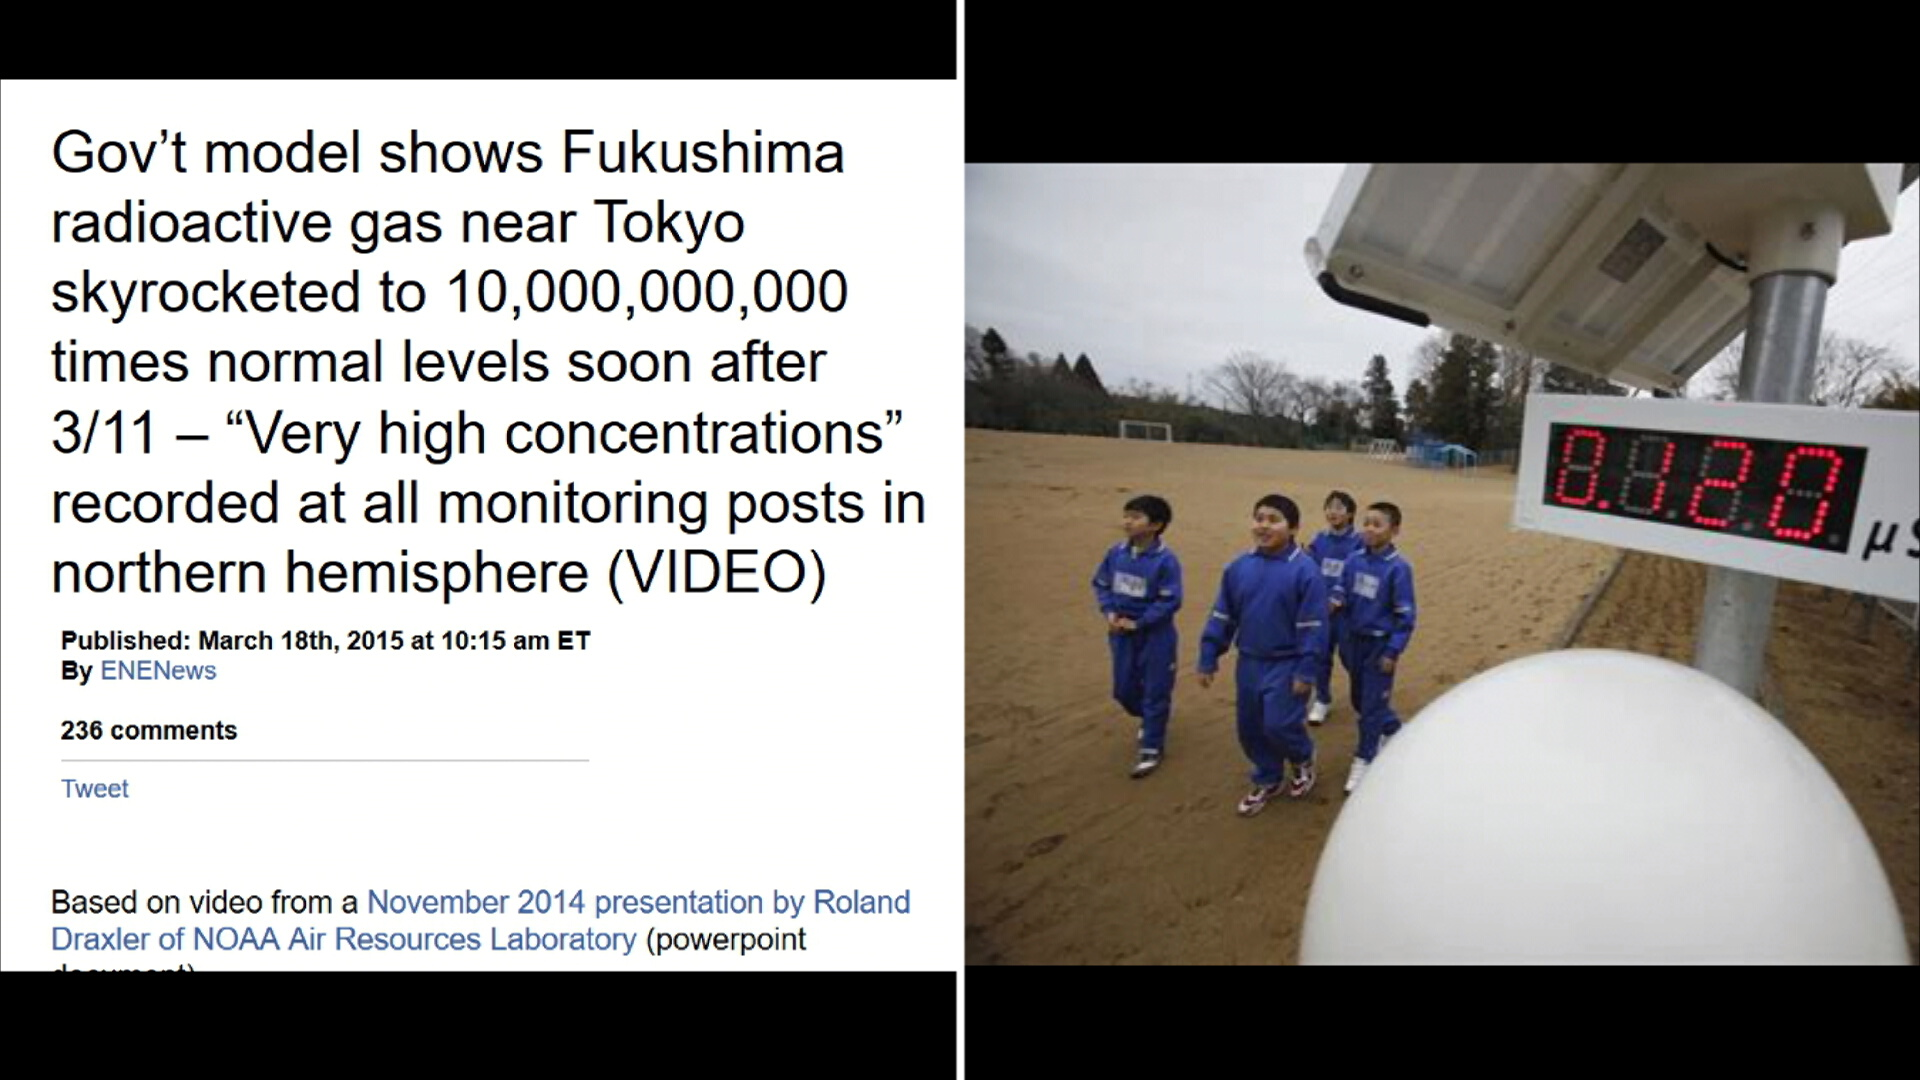 Tokyo radiation skyrocketed to 10 billion  times normal after Fukushima